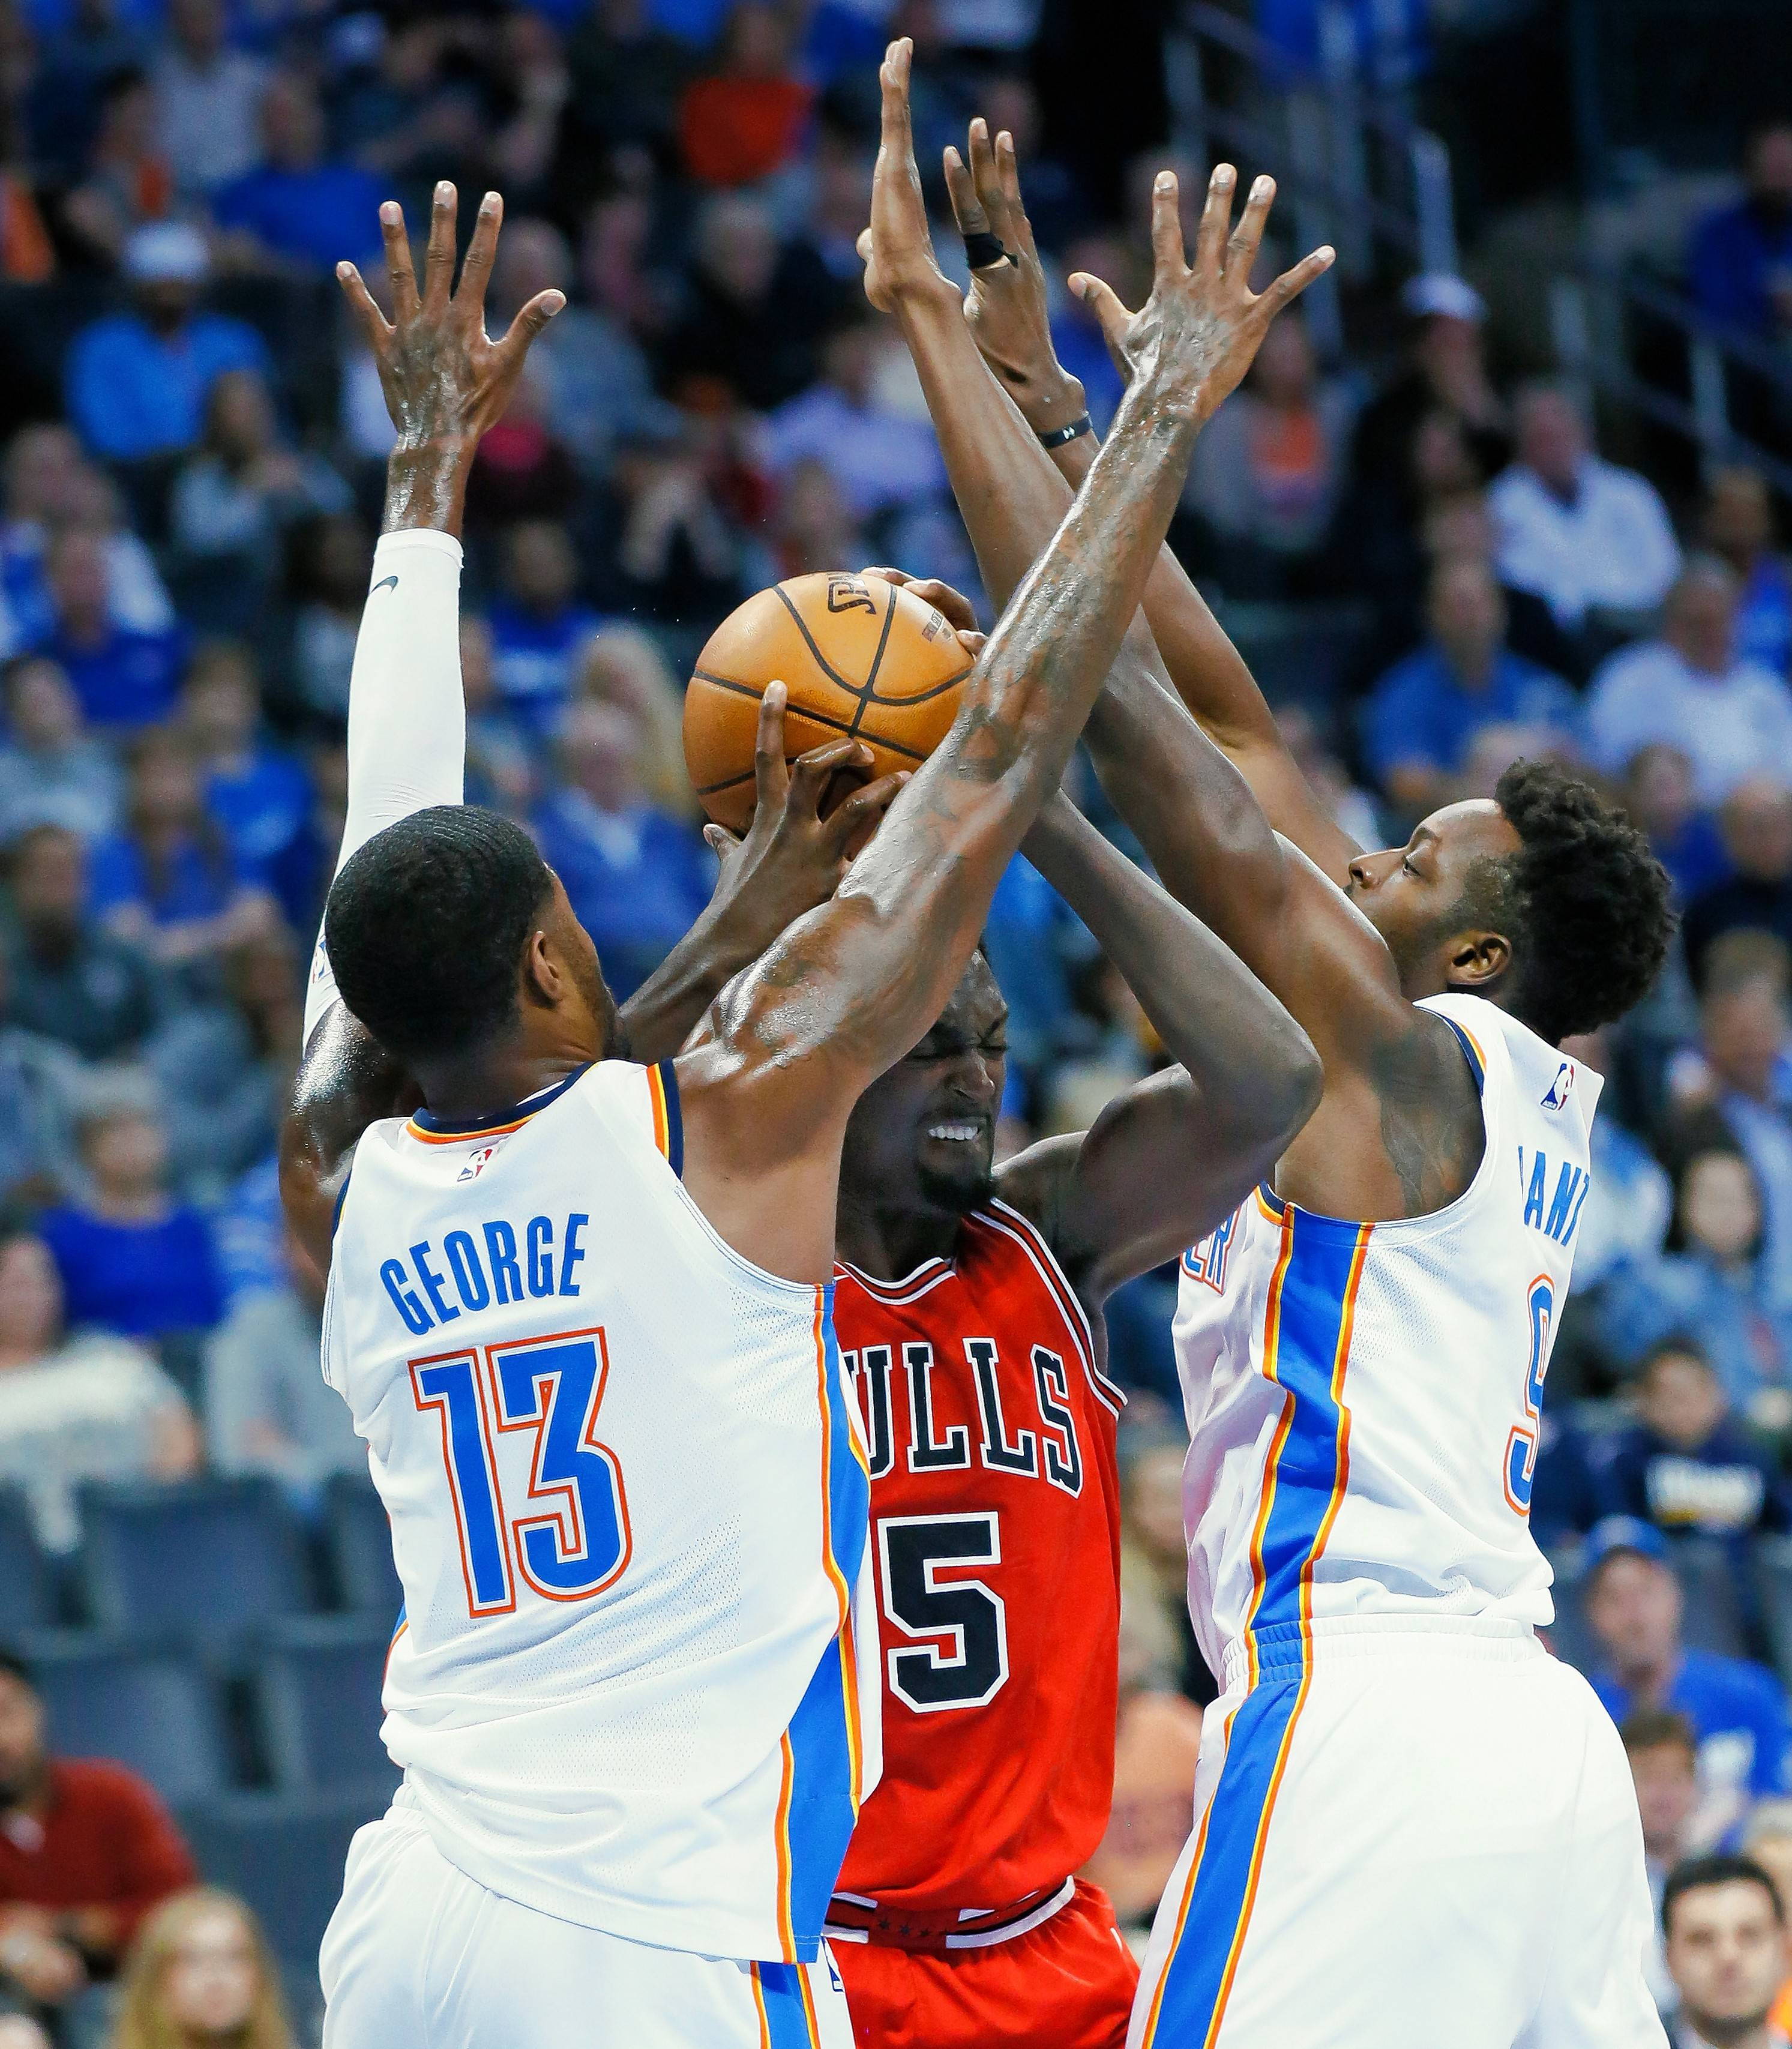 Oklahoma City was in control as the Chicago Bulls offense struggled to score in the first quarter of Wednesday's game. Here forward Bobby Portis runs into a double team by the Thunder's Paul George, left, and forward Jerami Grant.